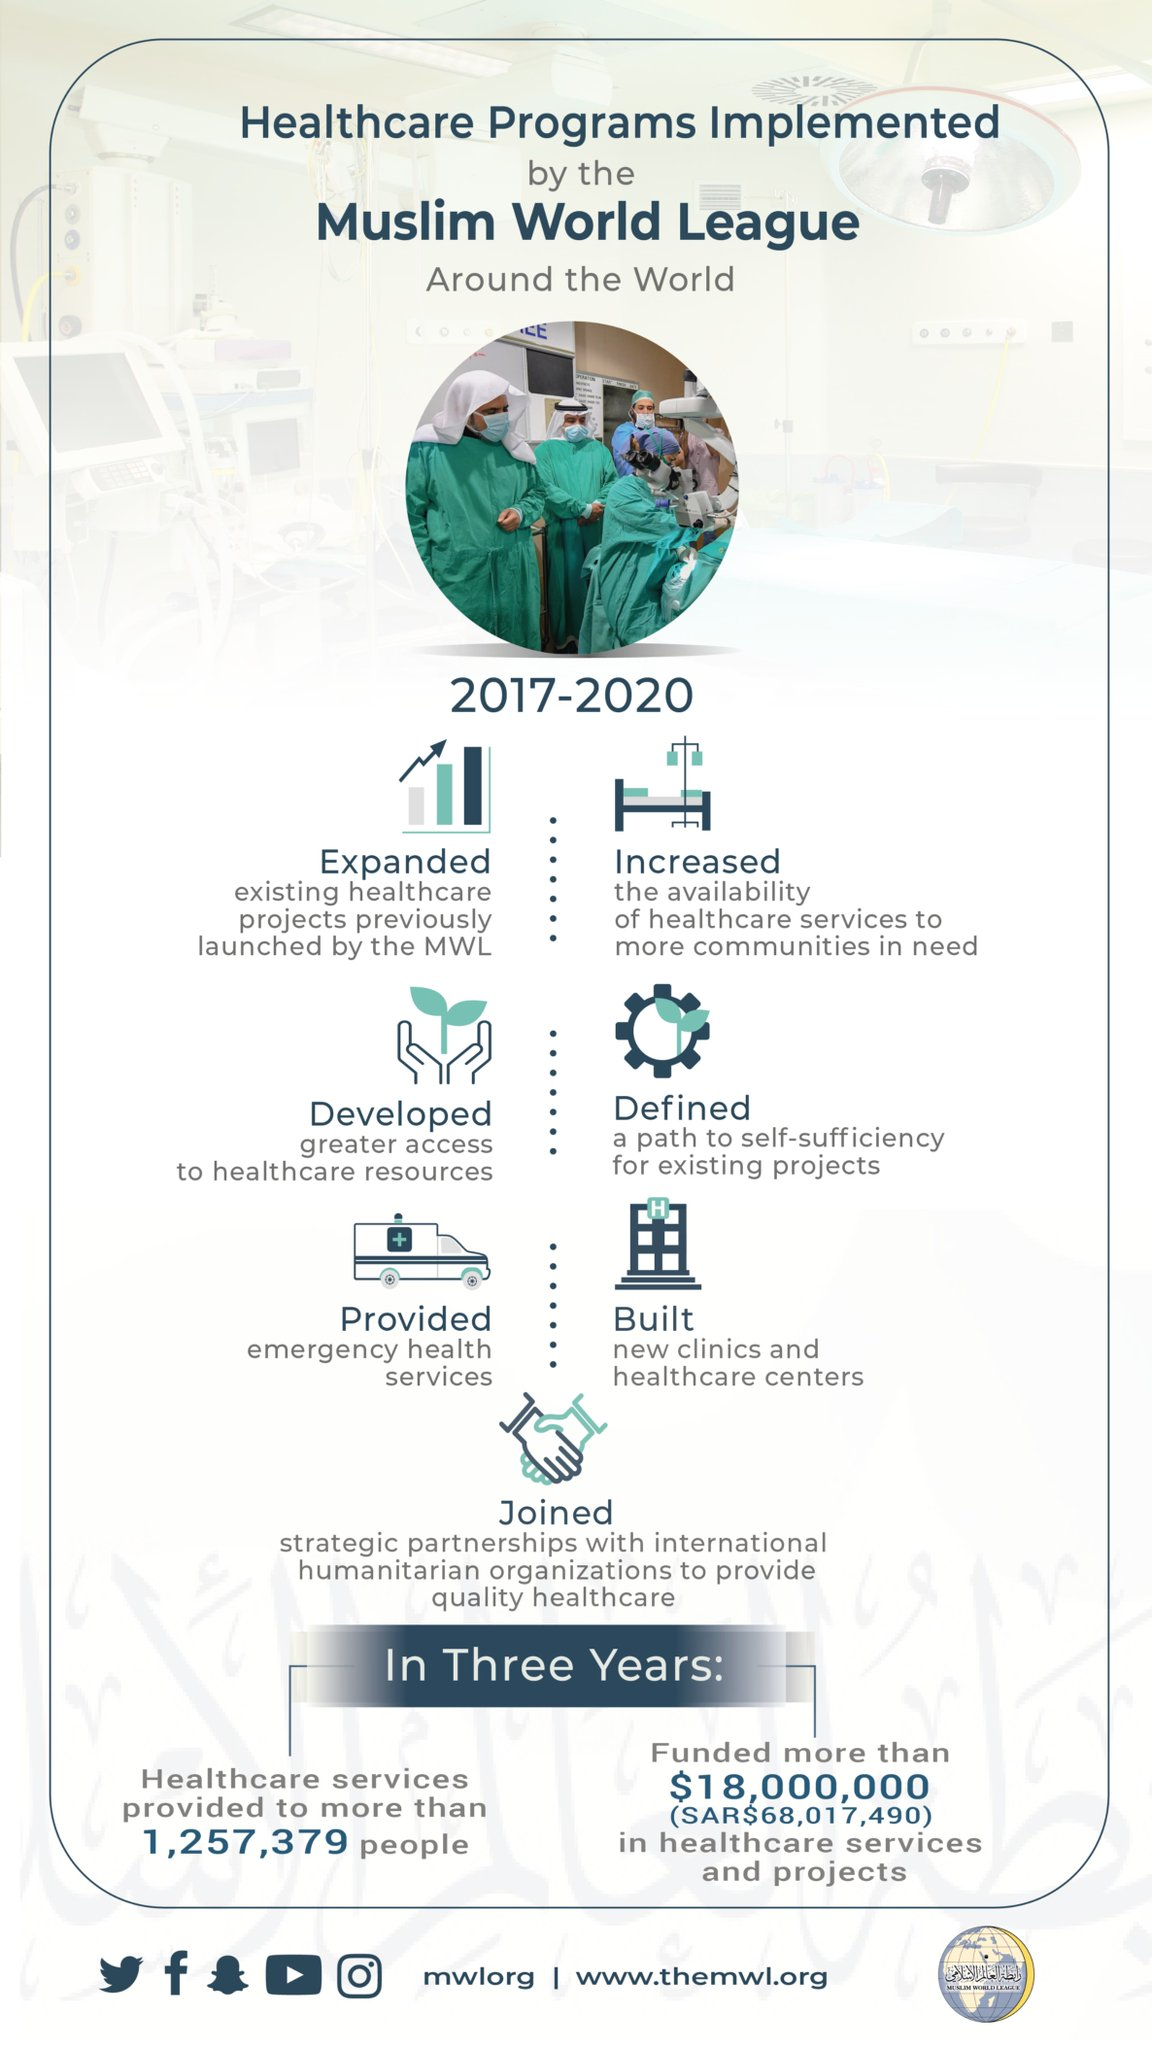 The Muslim World League has implemented a number of healthcare programs